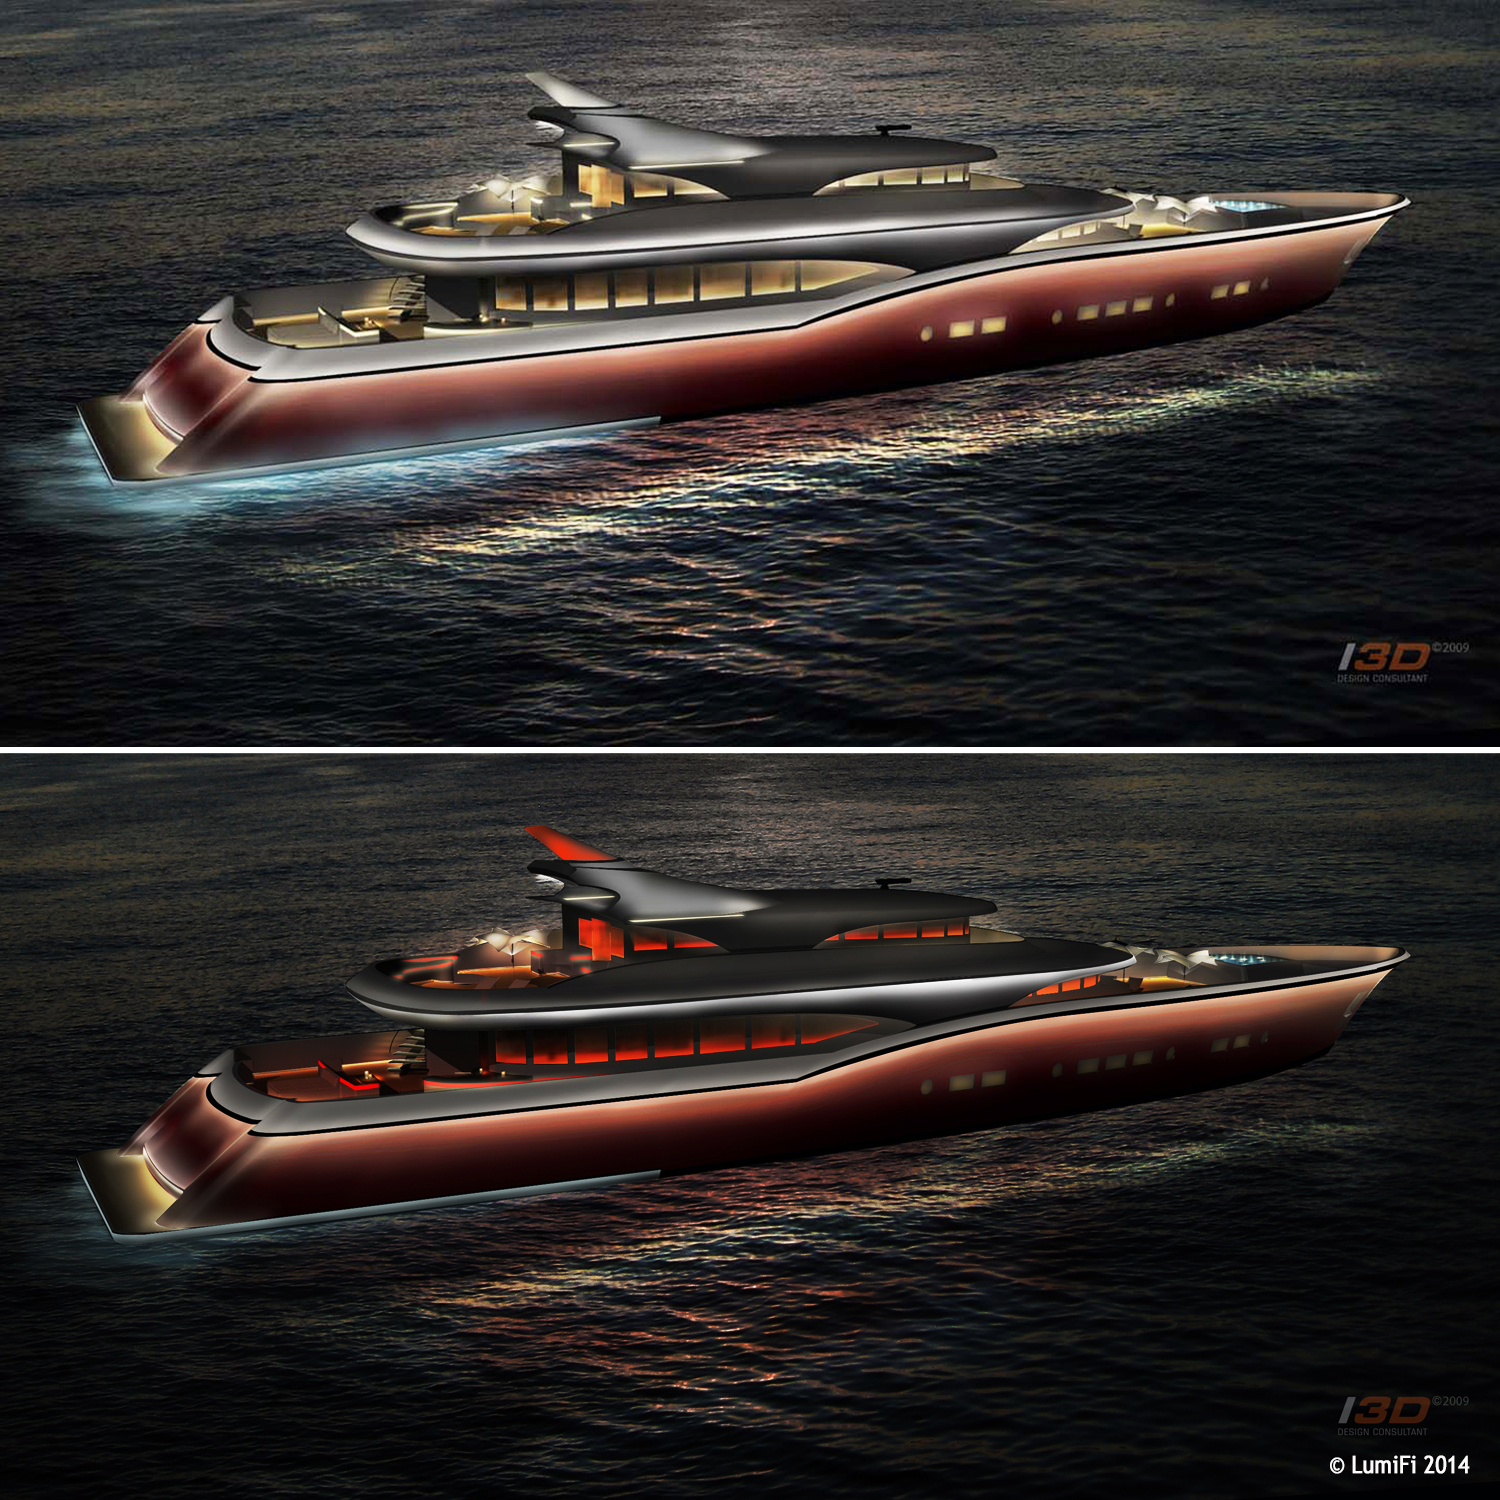 60M MOTORYACHT DESIGNED BY DLBA - Exterior Lighting Design Proposal